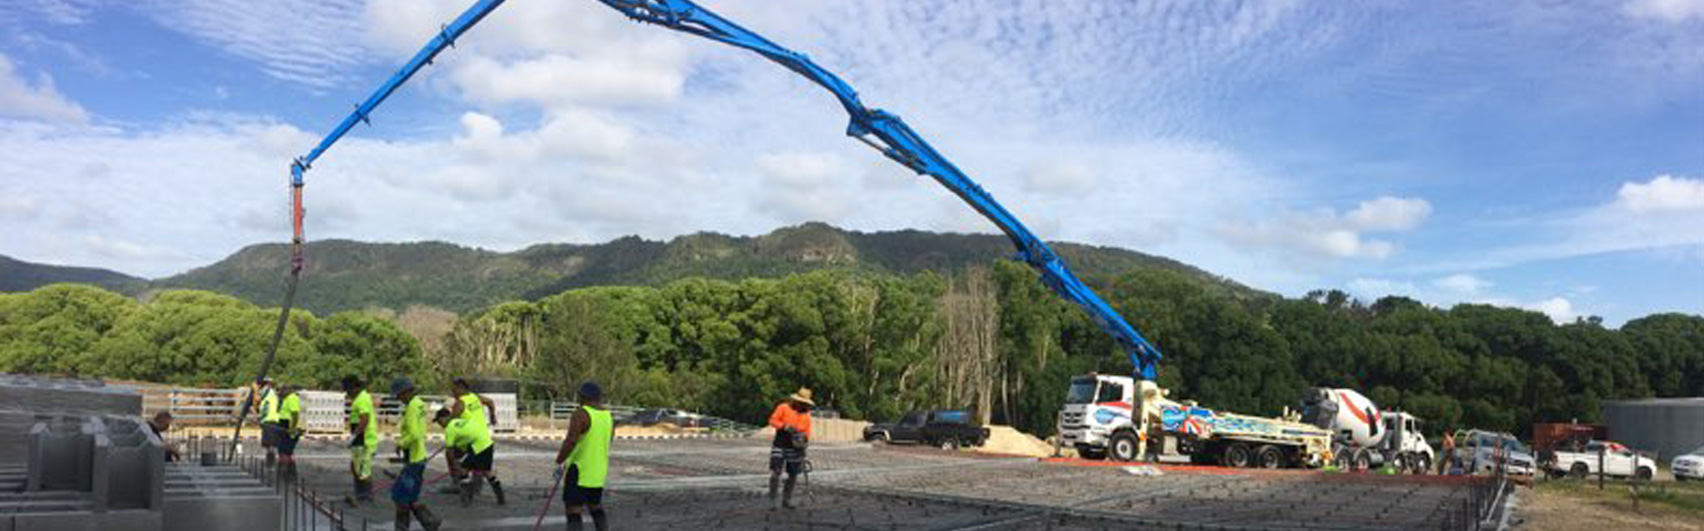 Concrete Pump Truck | Concrete Services | Gold Coast | Classic Concrete Pumping | New Slide 4